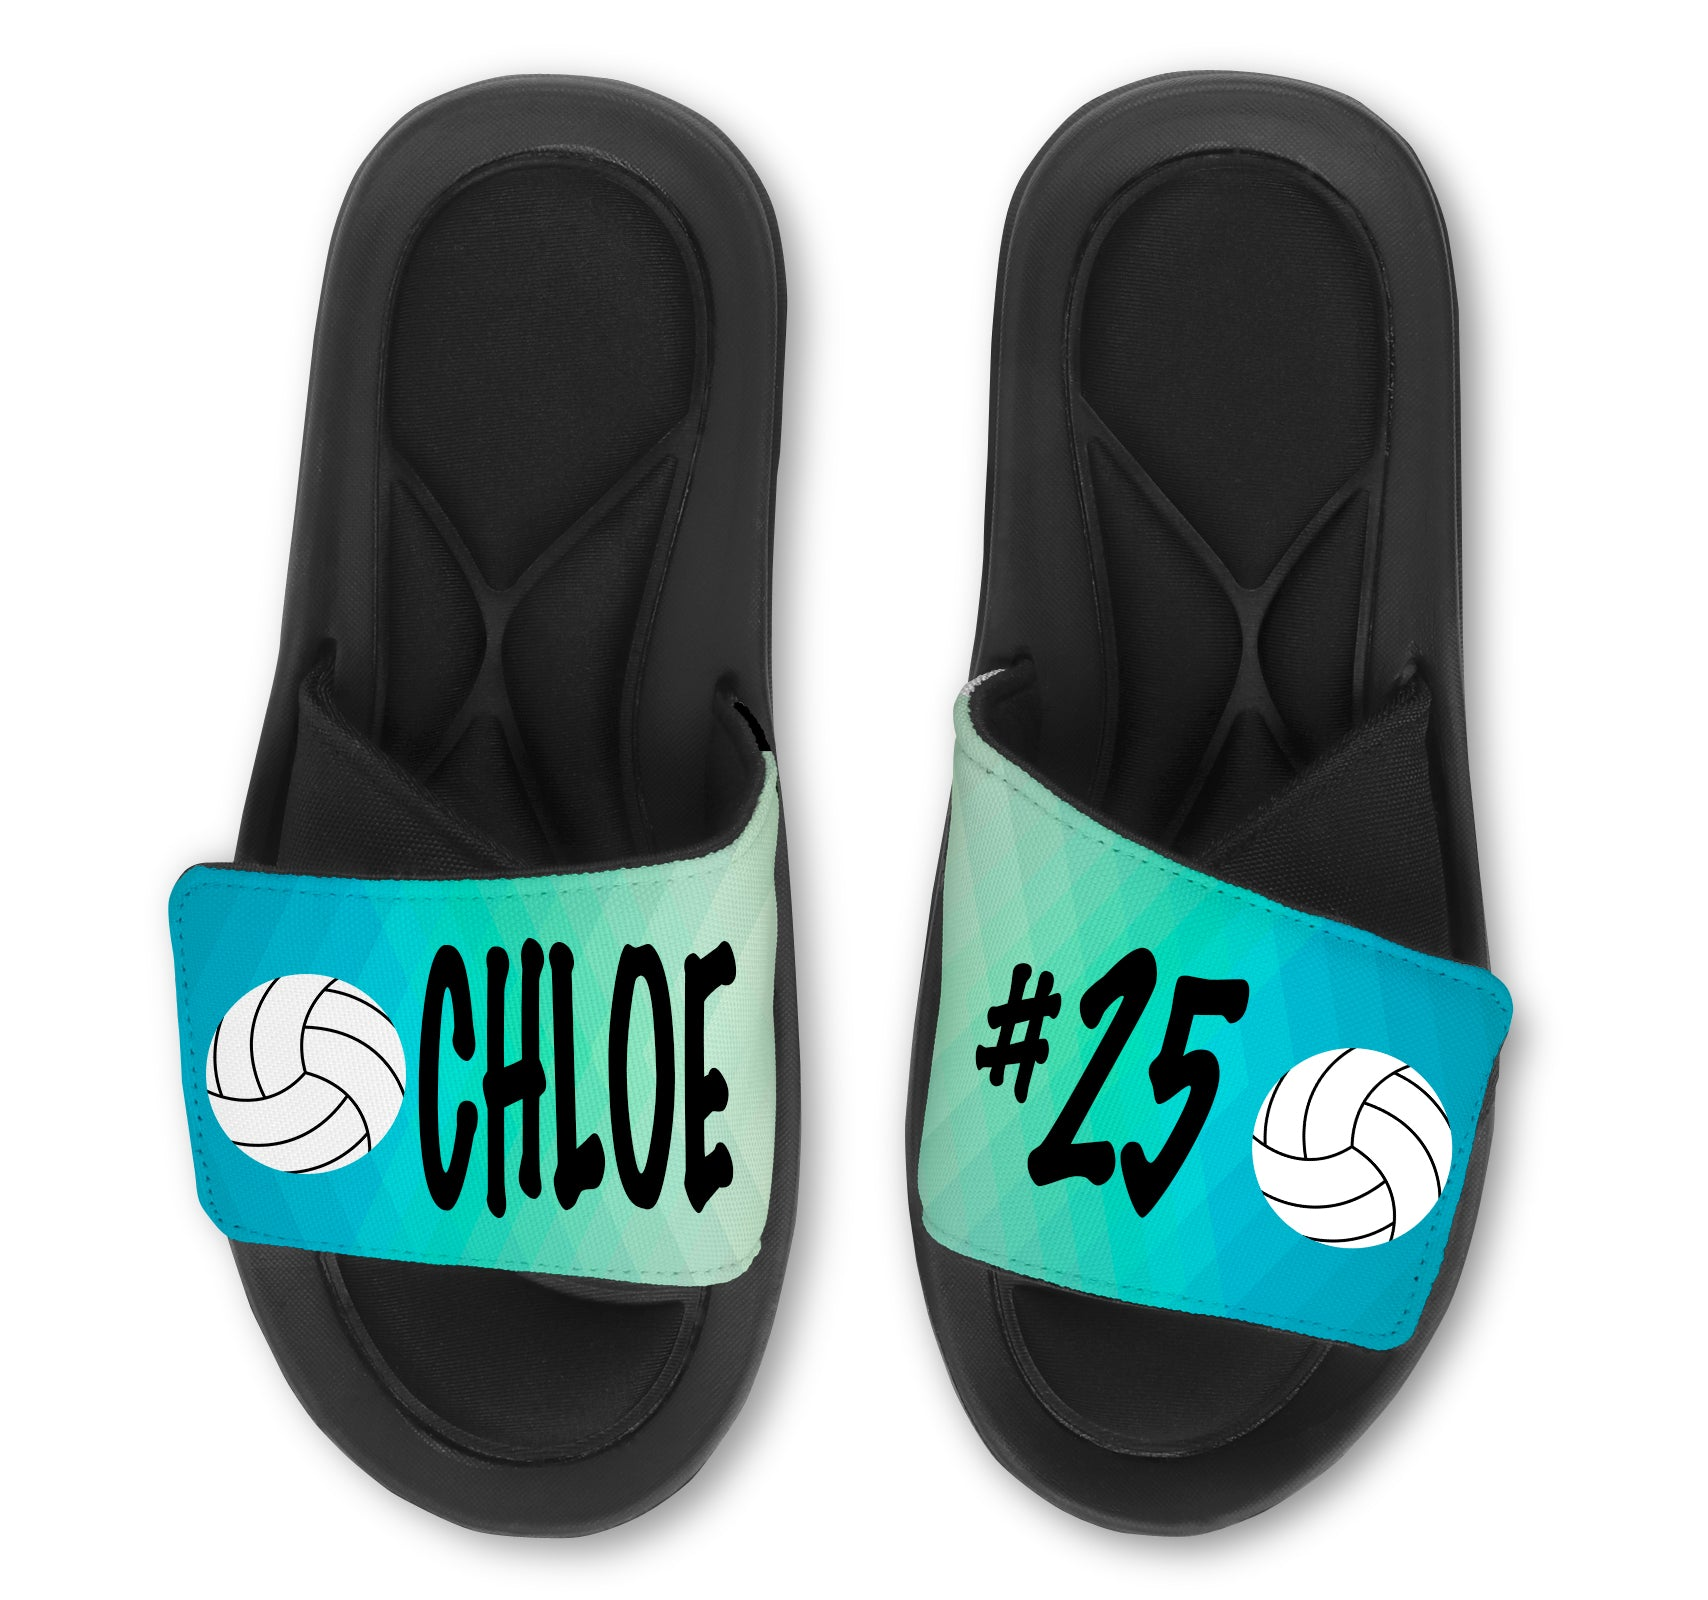 Volleyball Abstract Custom Slides / Sandals - Choose your Background!